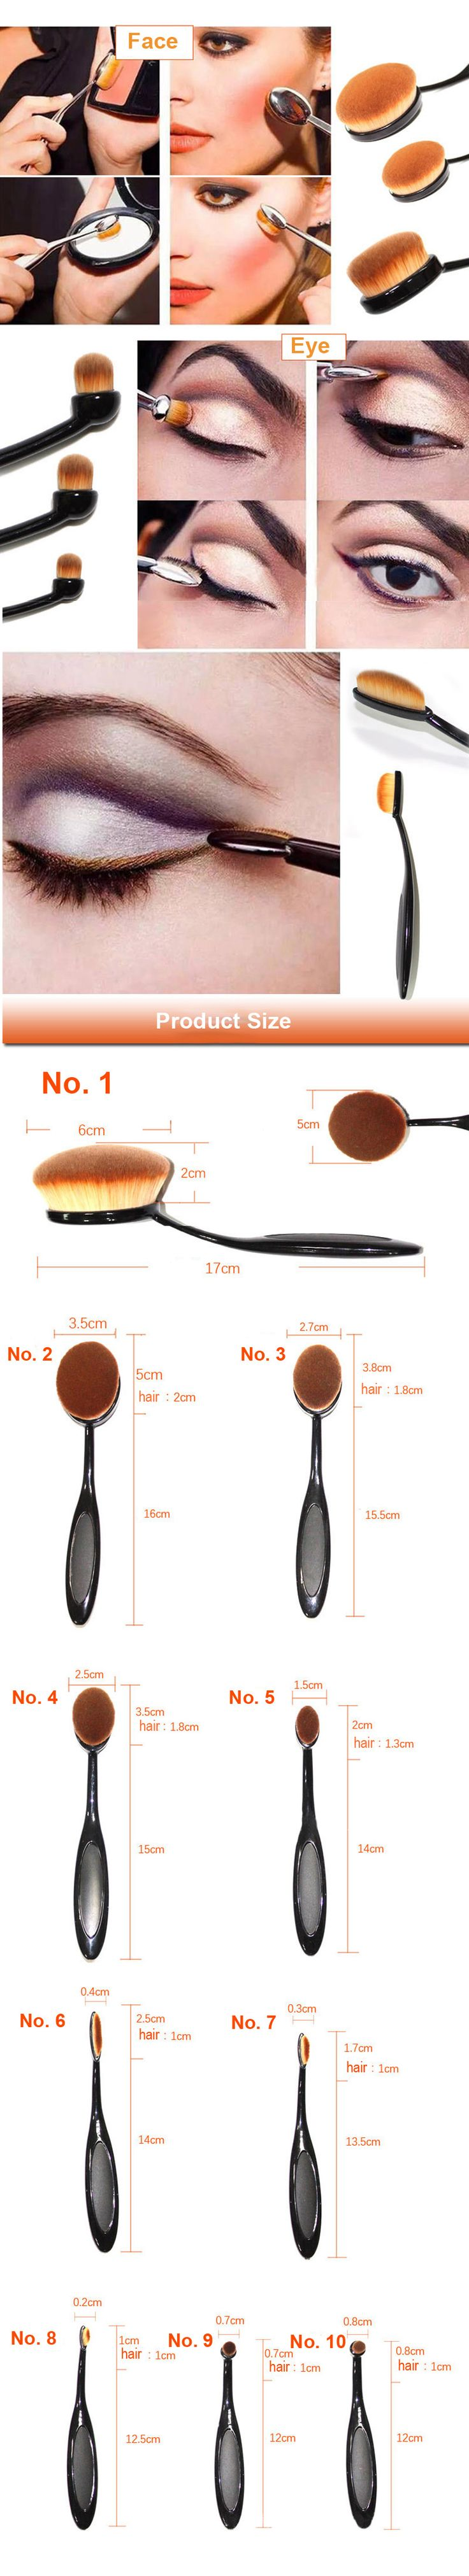 Oval Soft Brush Makeup Cosmetic Powder Foundation Face Eyeshadow Brushes Tool Kit - US$ 23.20